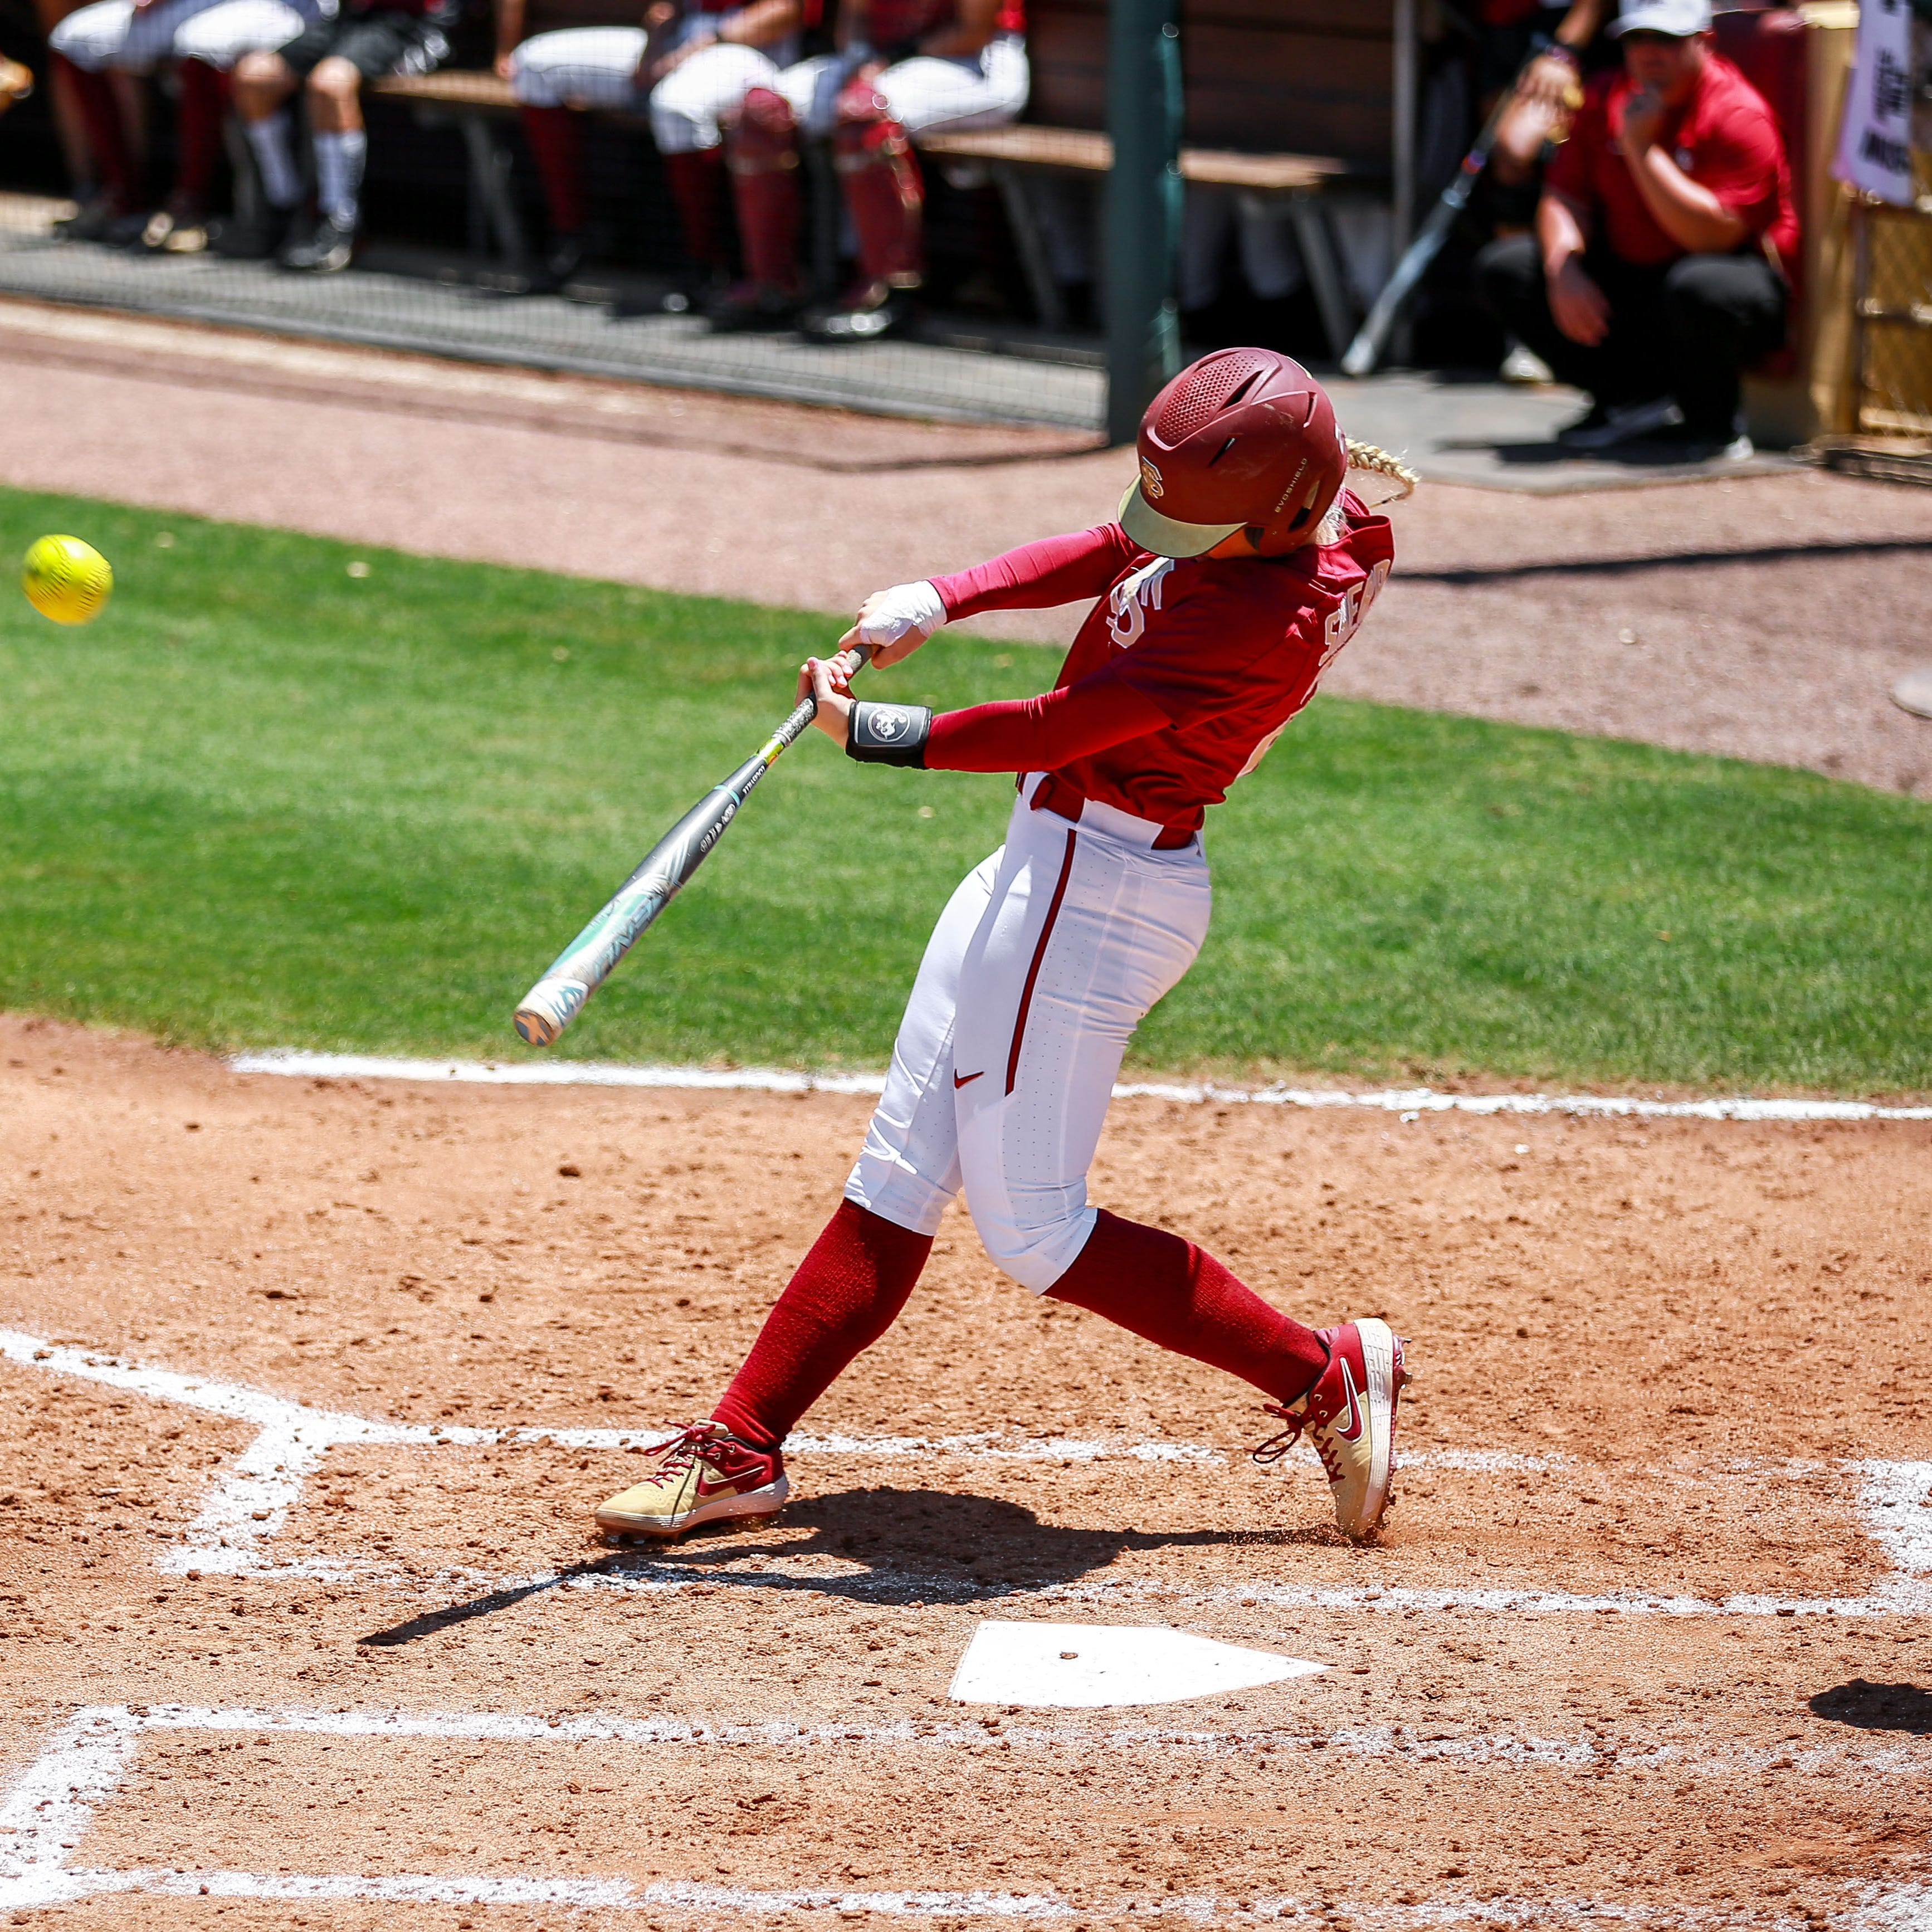 Sydney Sherrill swinging toward success